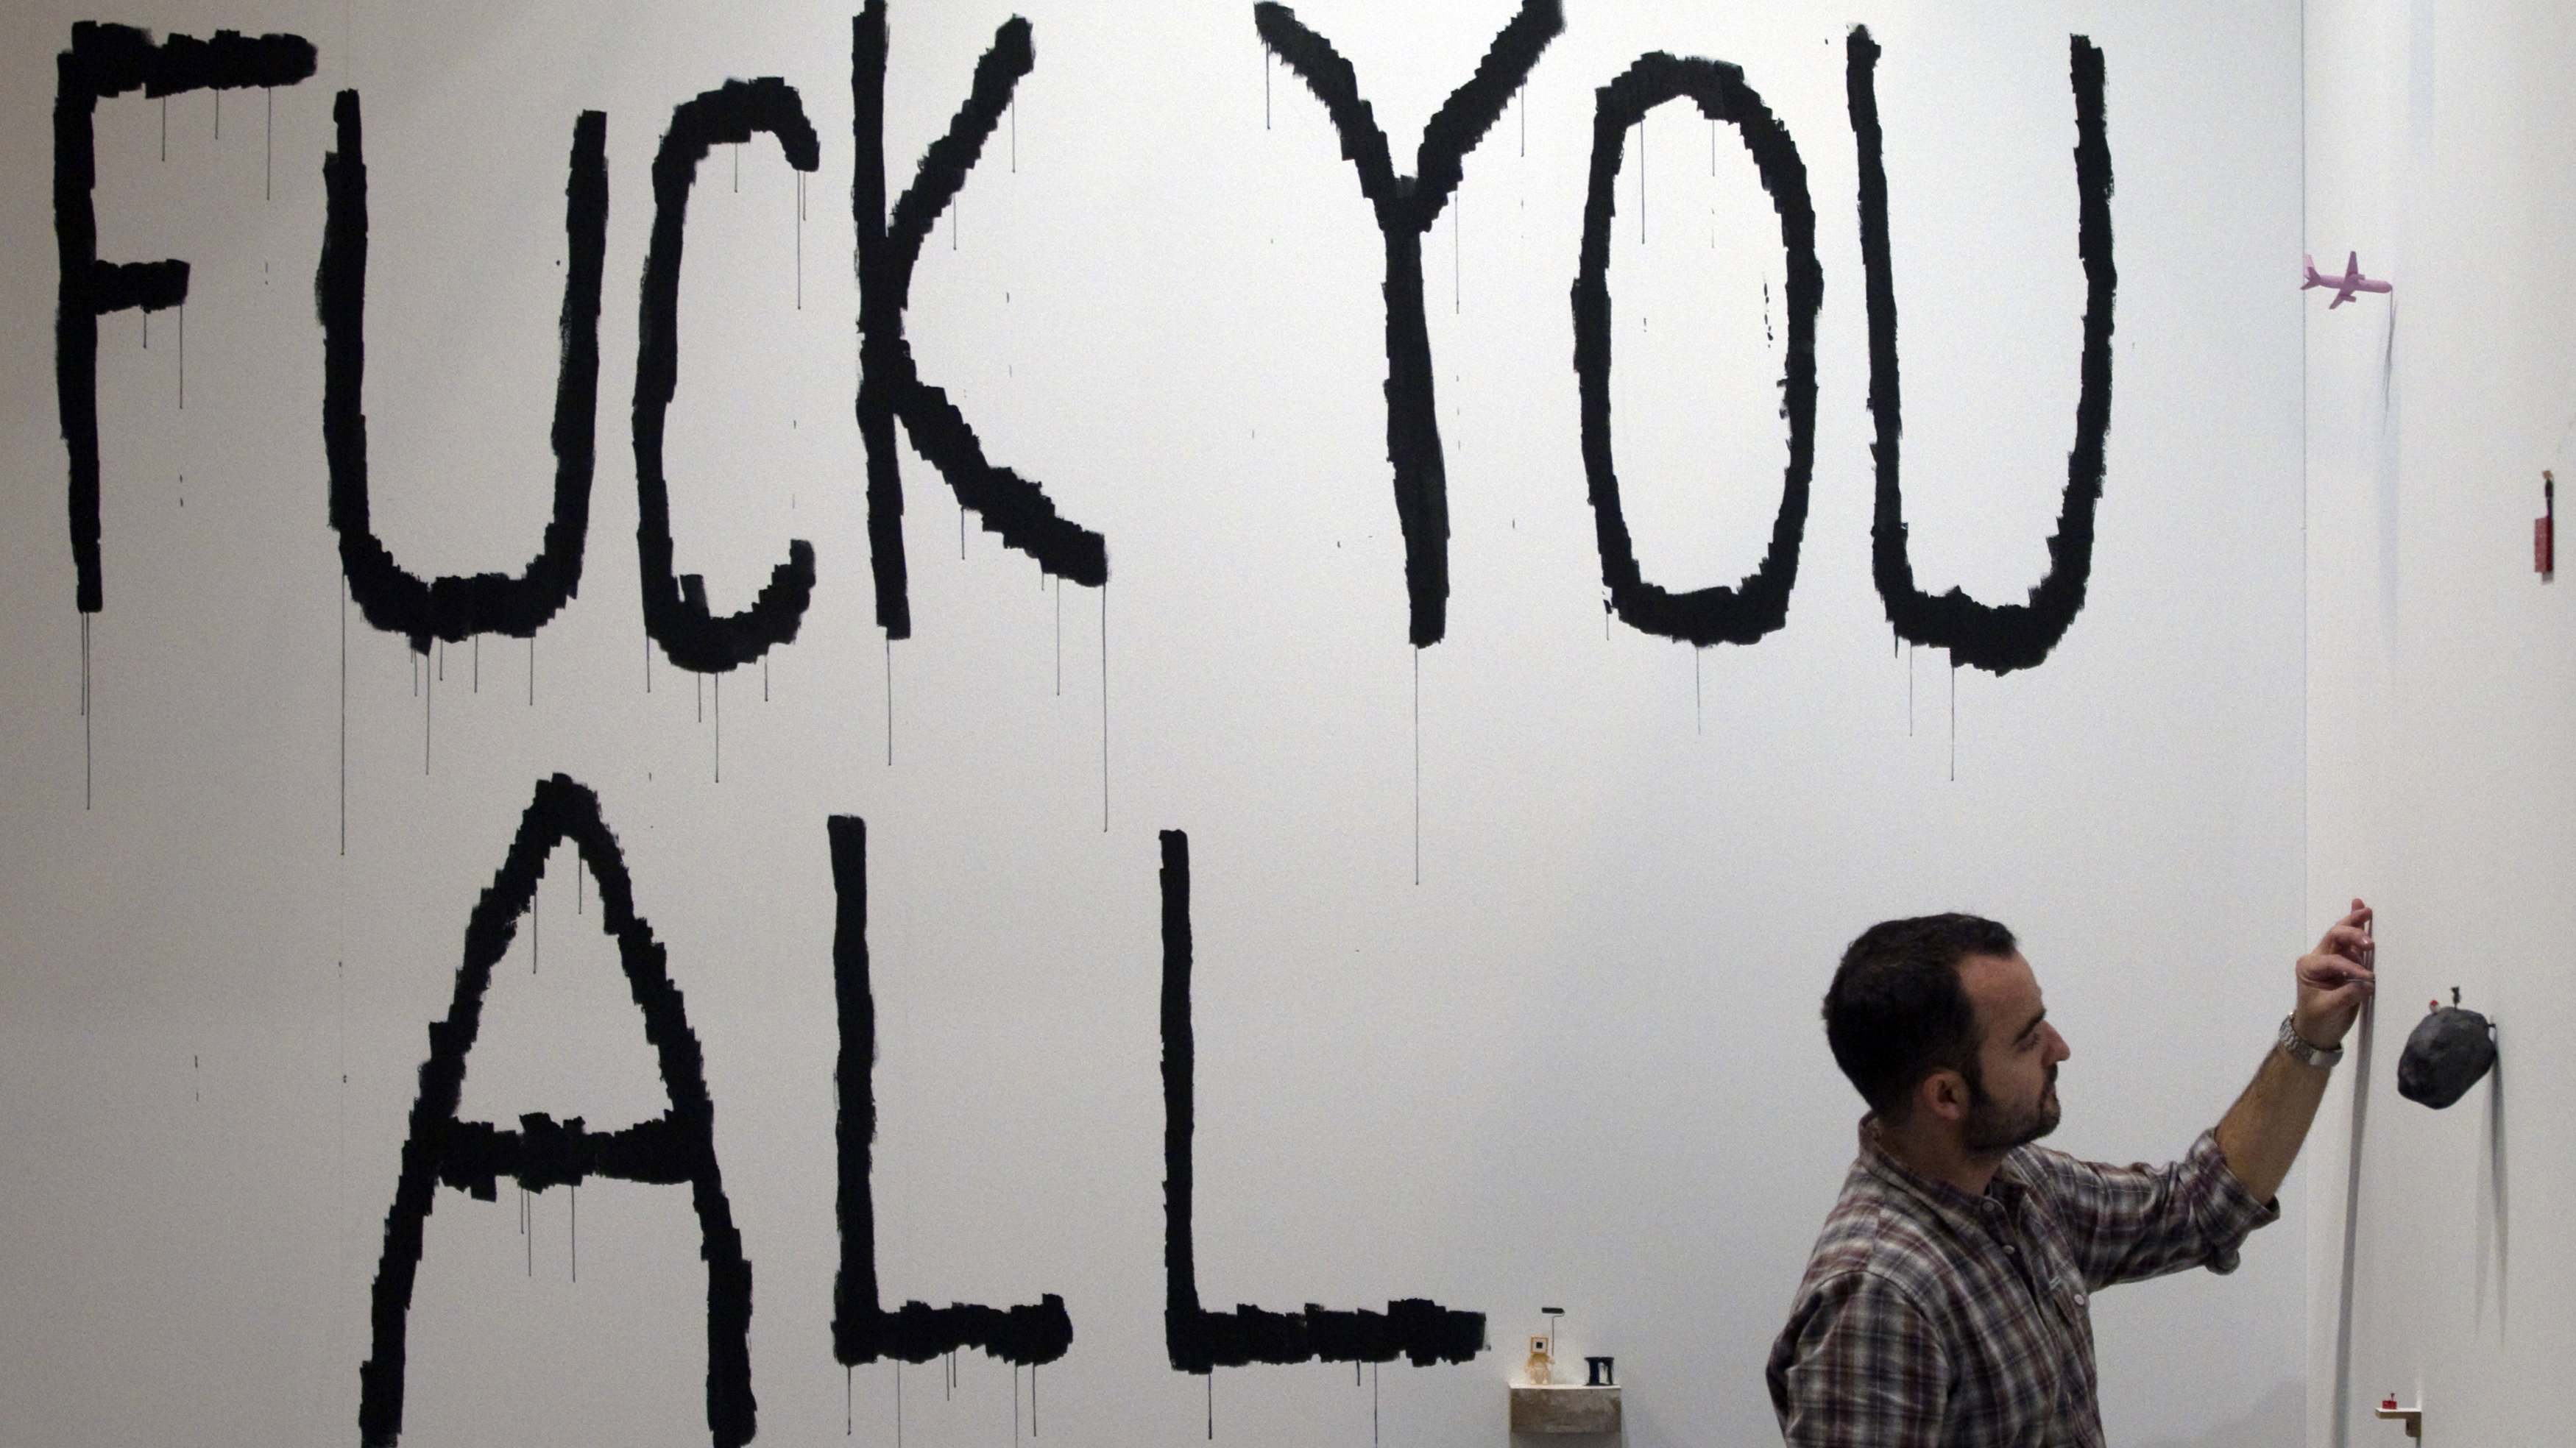 """Spanish artist Javier Calleja sets up his artwork """"Fuck You All"""" at Madrid's International Contemporary Art fair ARCO in Madrid February 15, 2011. The fair will be open from February 15 to 20."""